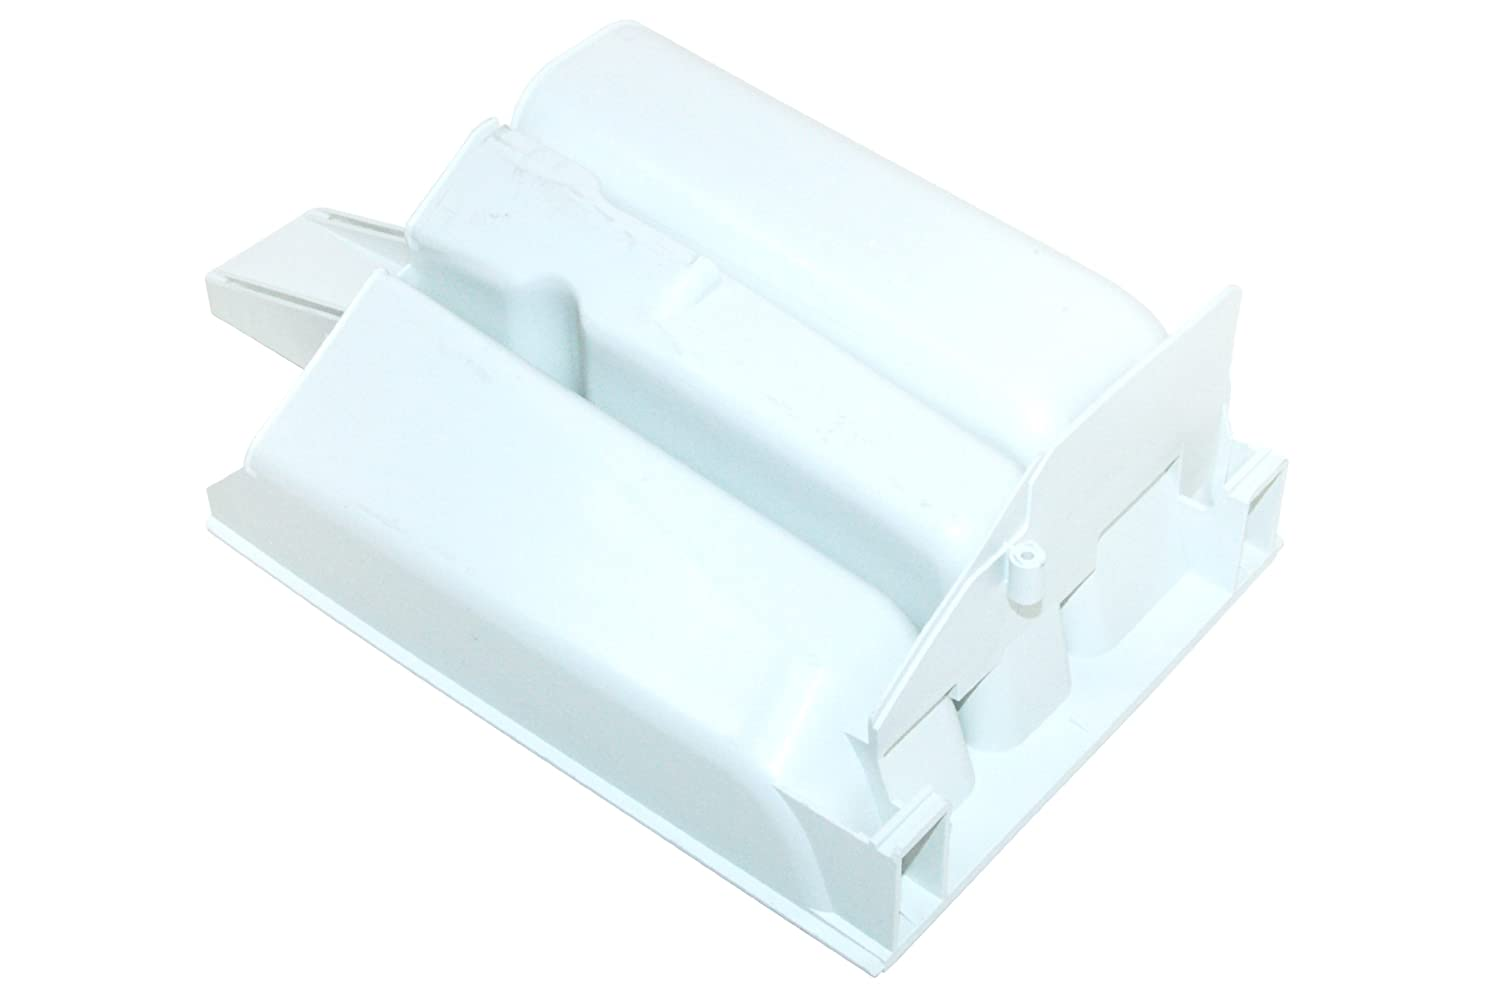 Bosch Washing Machine Dispenser Tray. Genuine Part Number 439664